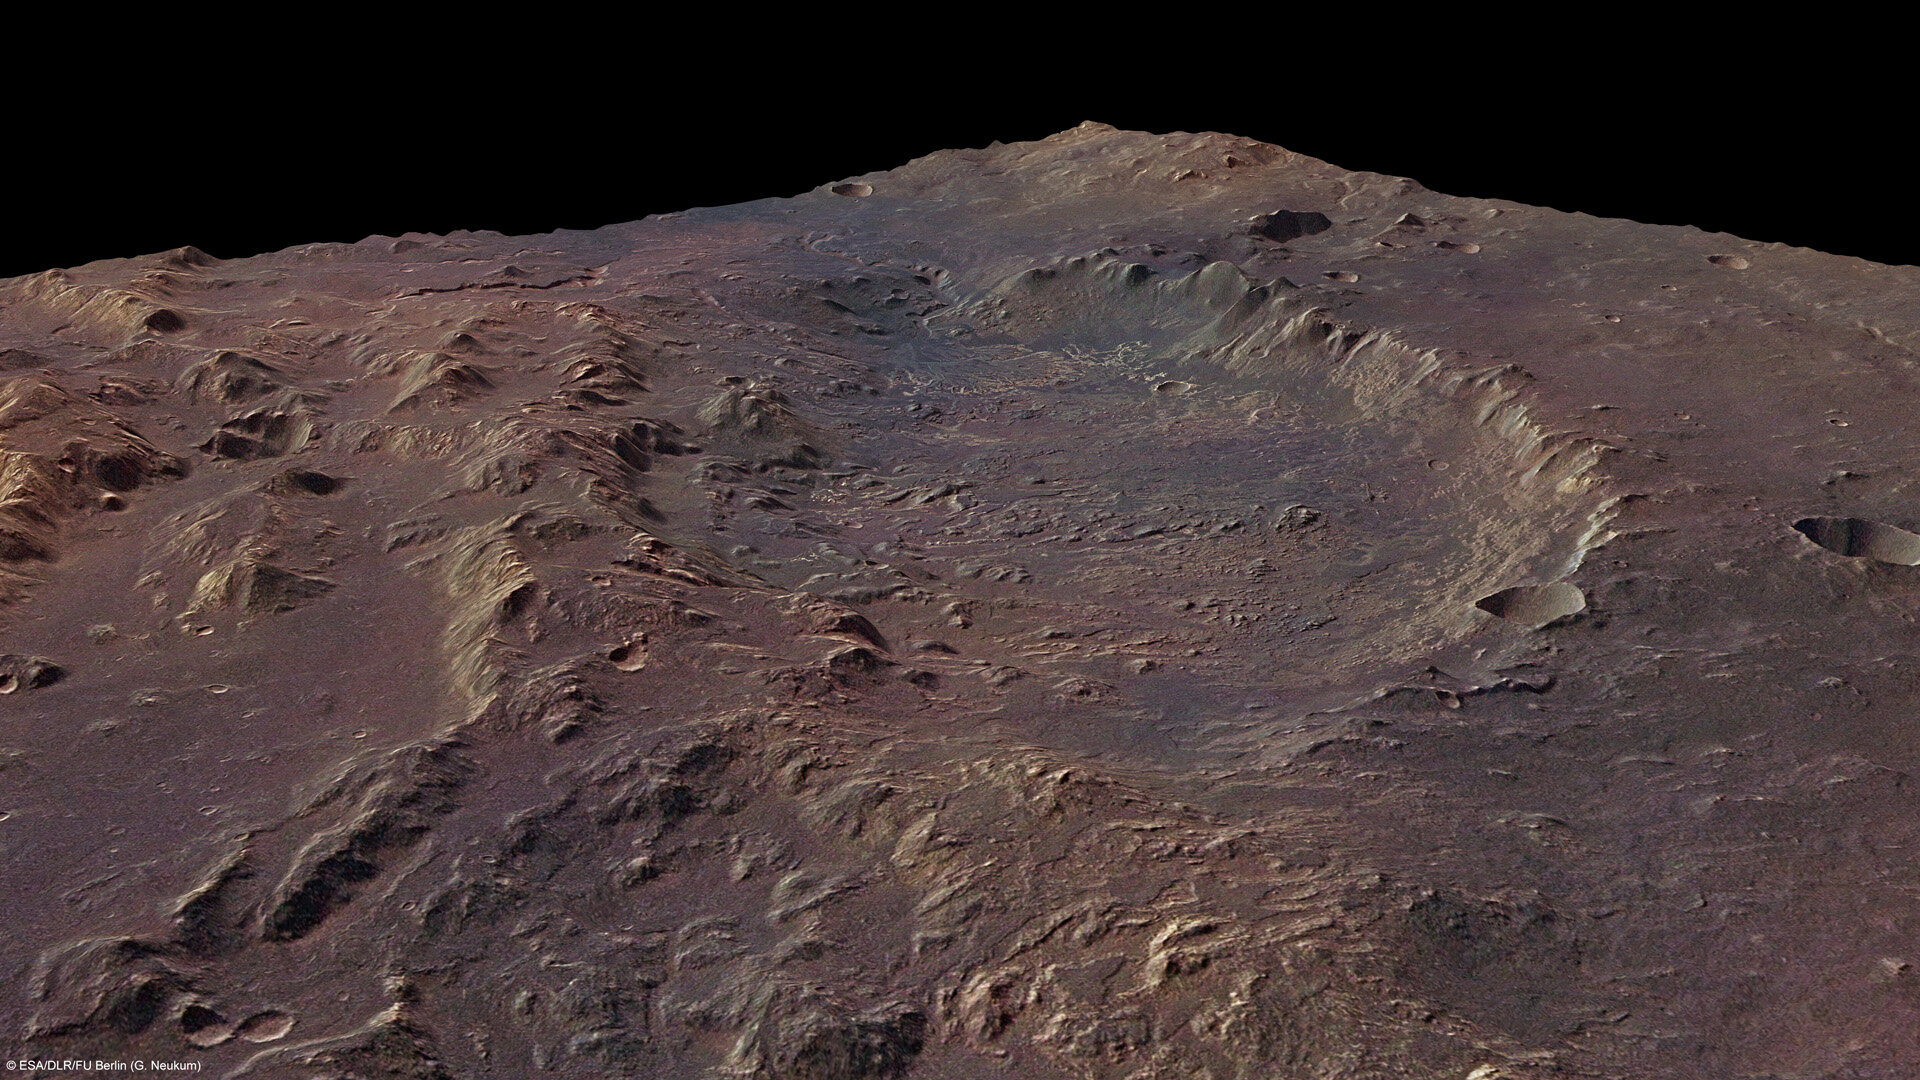 Eberswalde crater in perspective